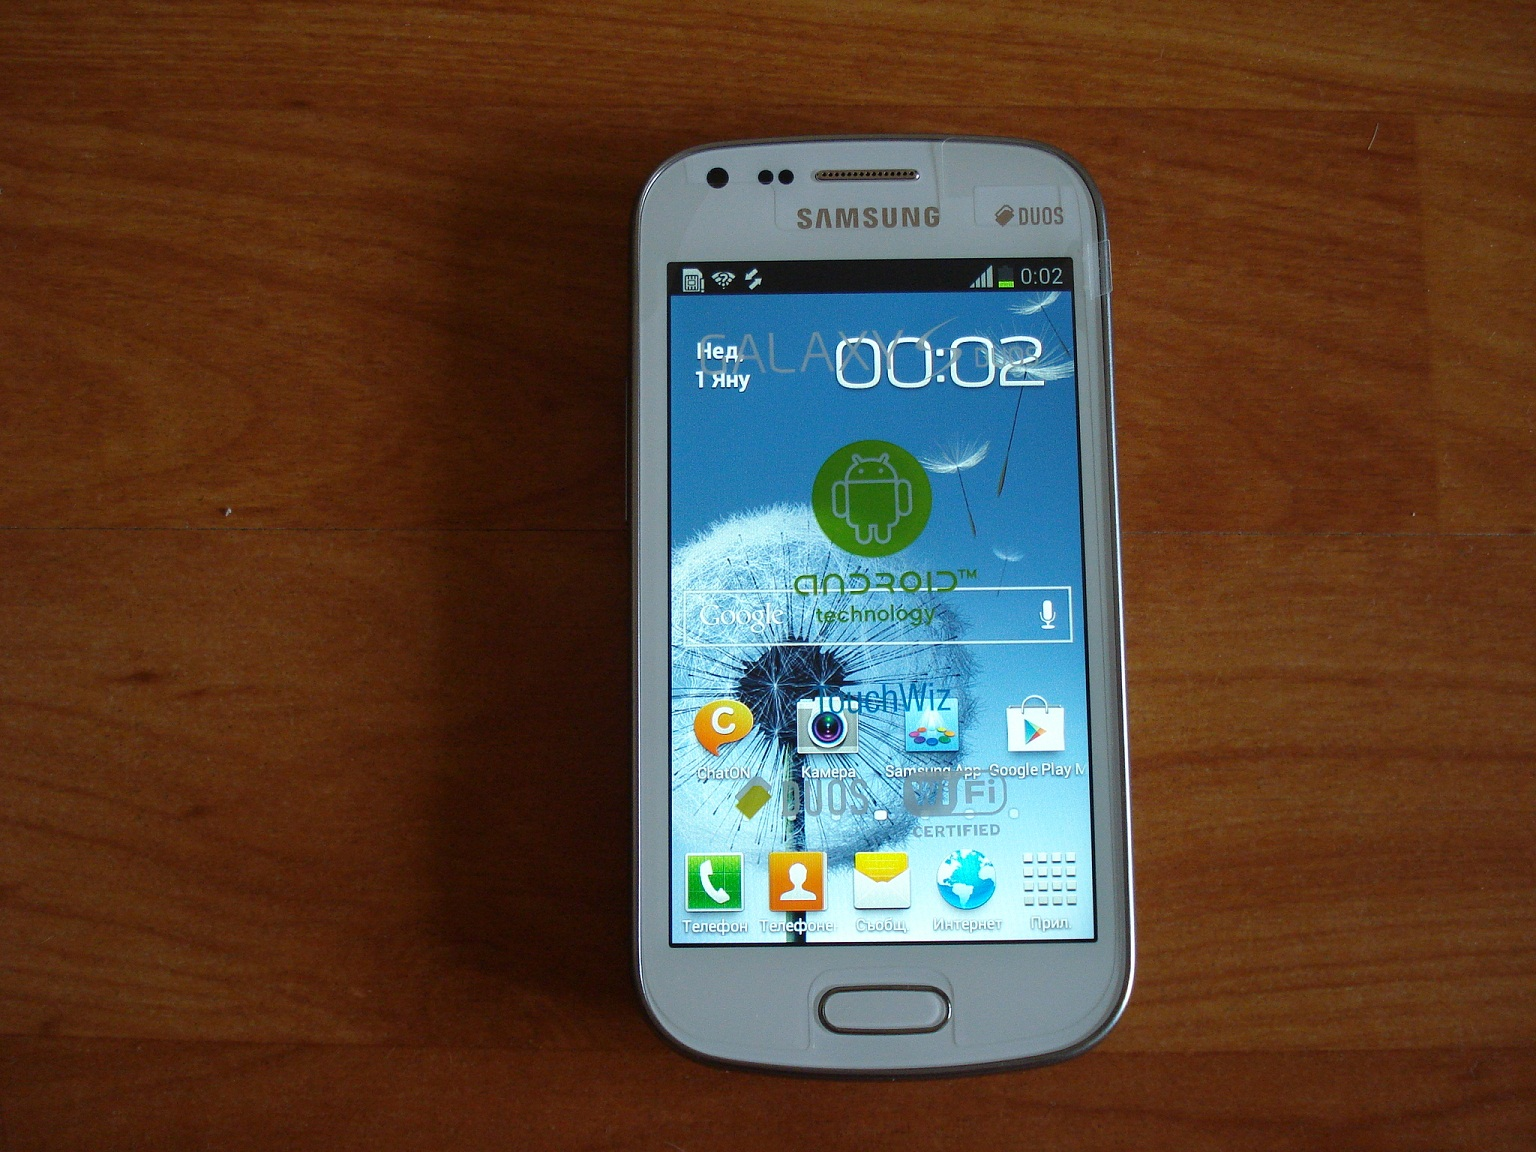 Download image Samsung S7562 Galaxy S Duos PC, Android, iPhone and